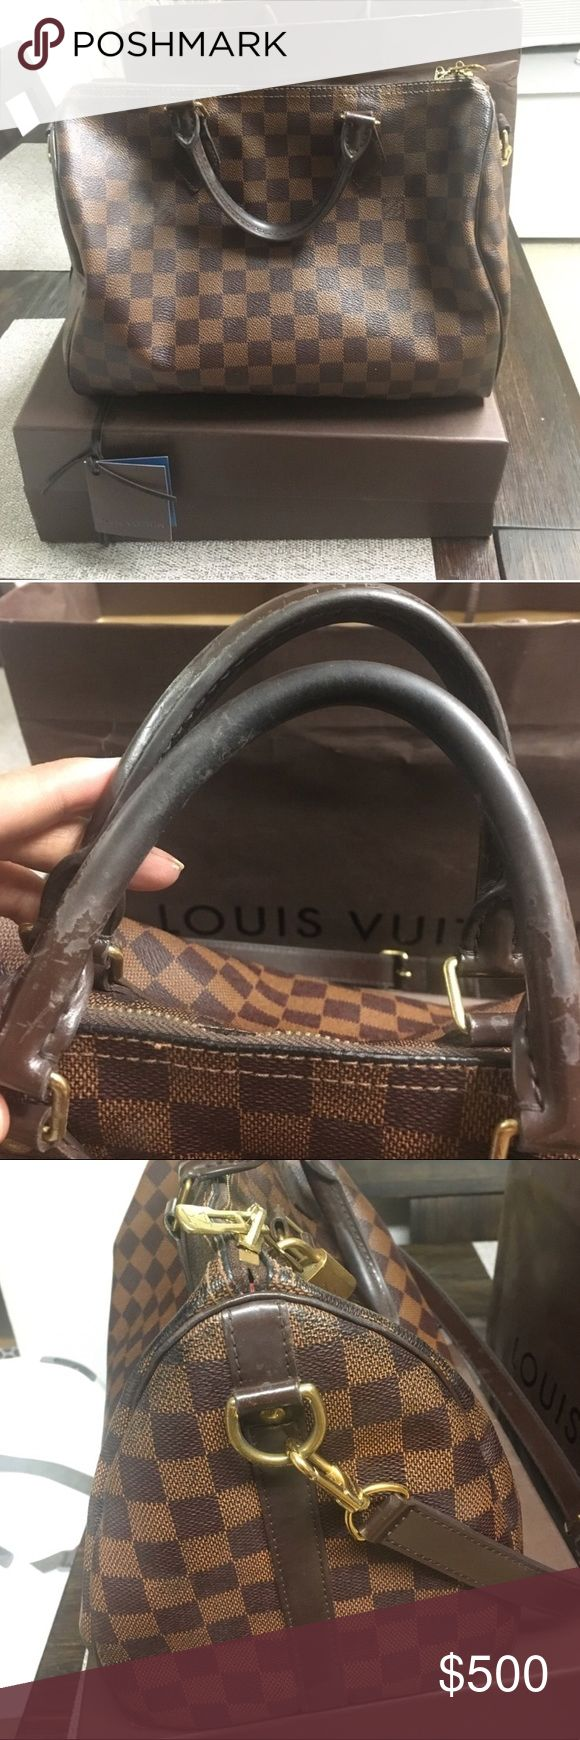 Authentic Louise Vuitton Damien Speedy bag Some peeling on handles. Signs of wear on two bottom corners. Will include long strap, dustbag, box, shopping bag and tag with original price. Louis Vuitton Bags